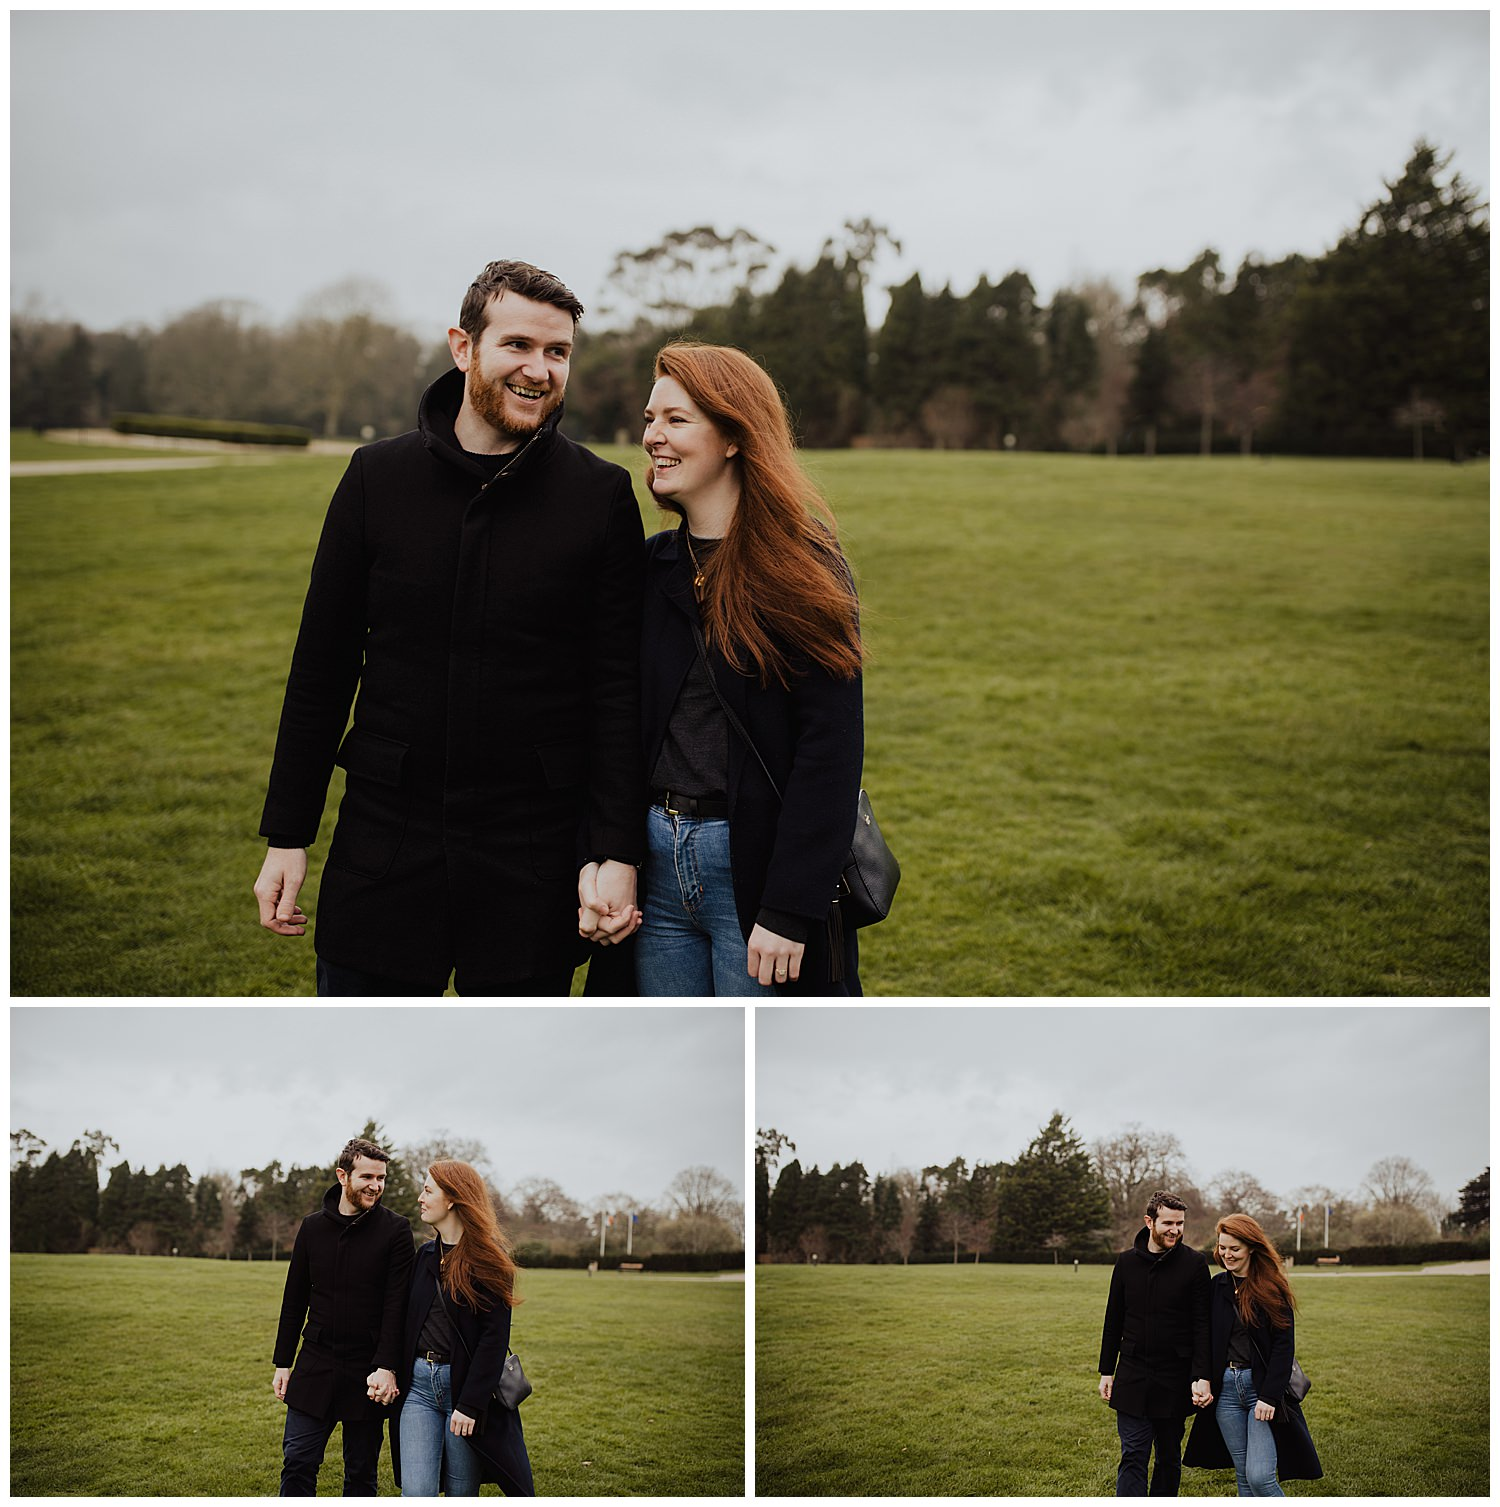 j+m_malahide_castle_engagement_session_wedding_photographer_ireland_livia_figueiredo_2.jpg